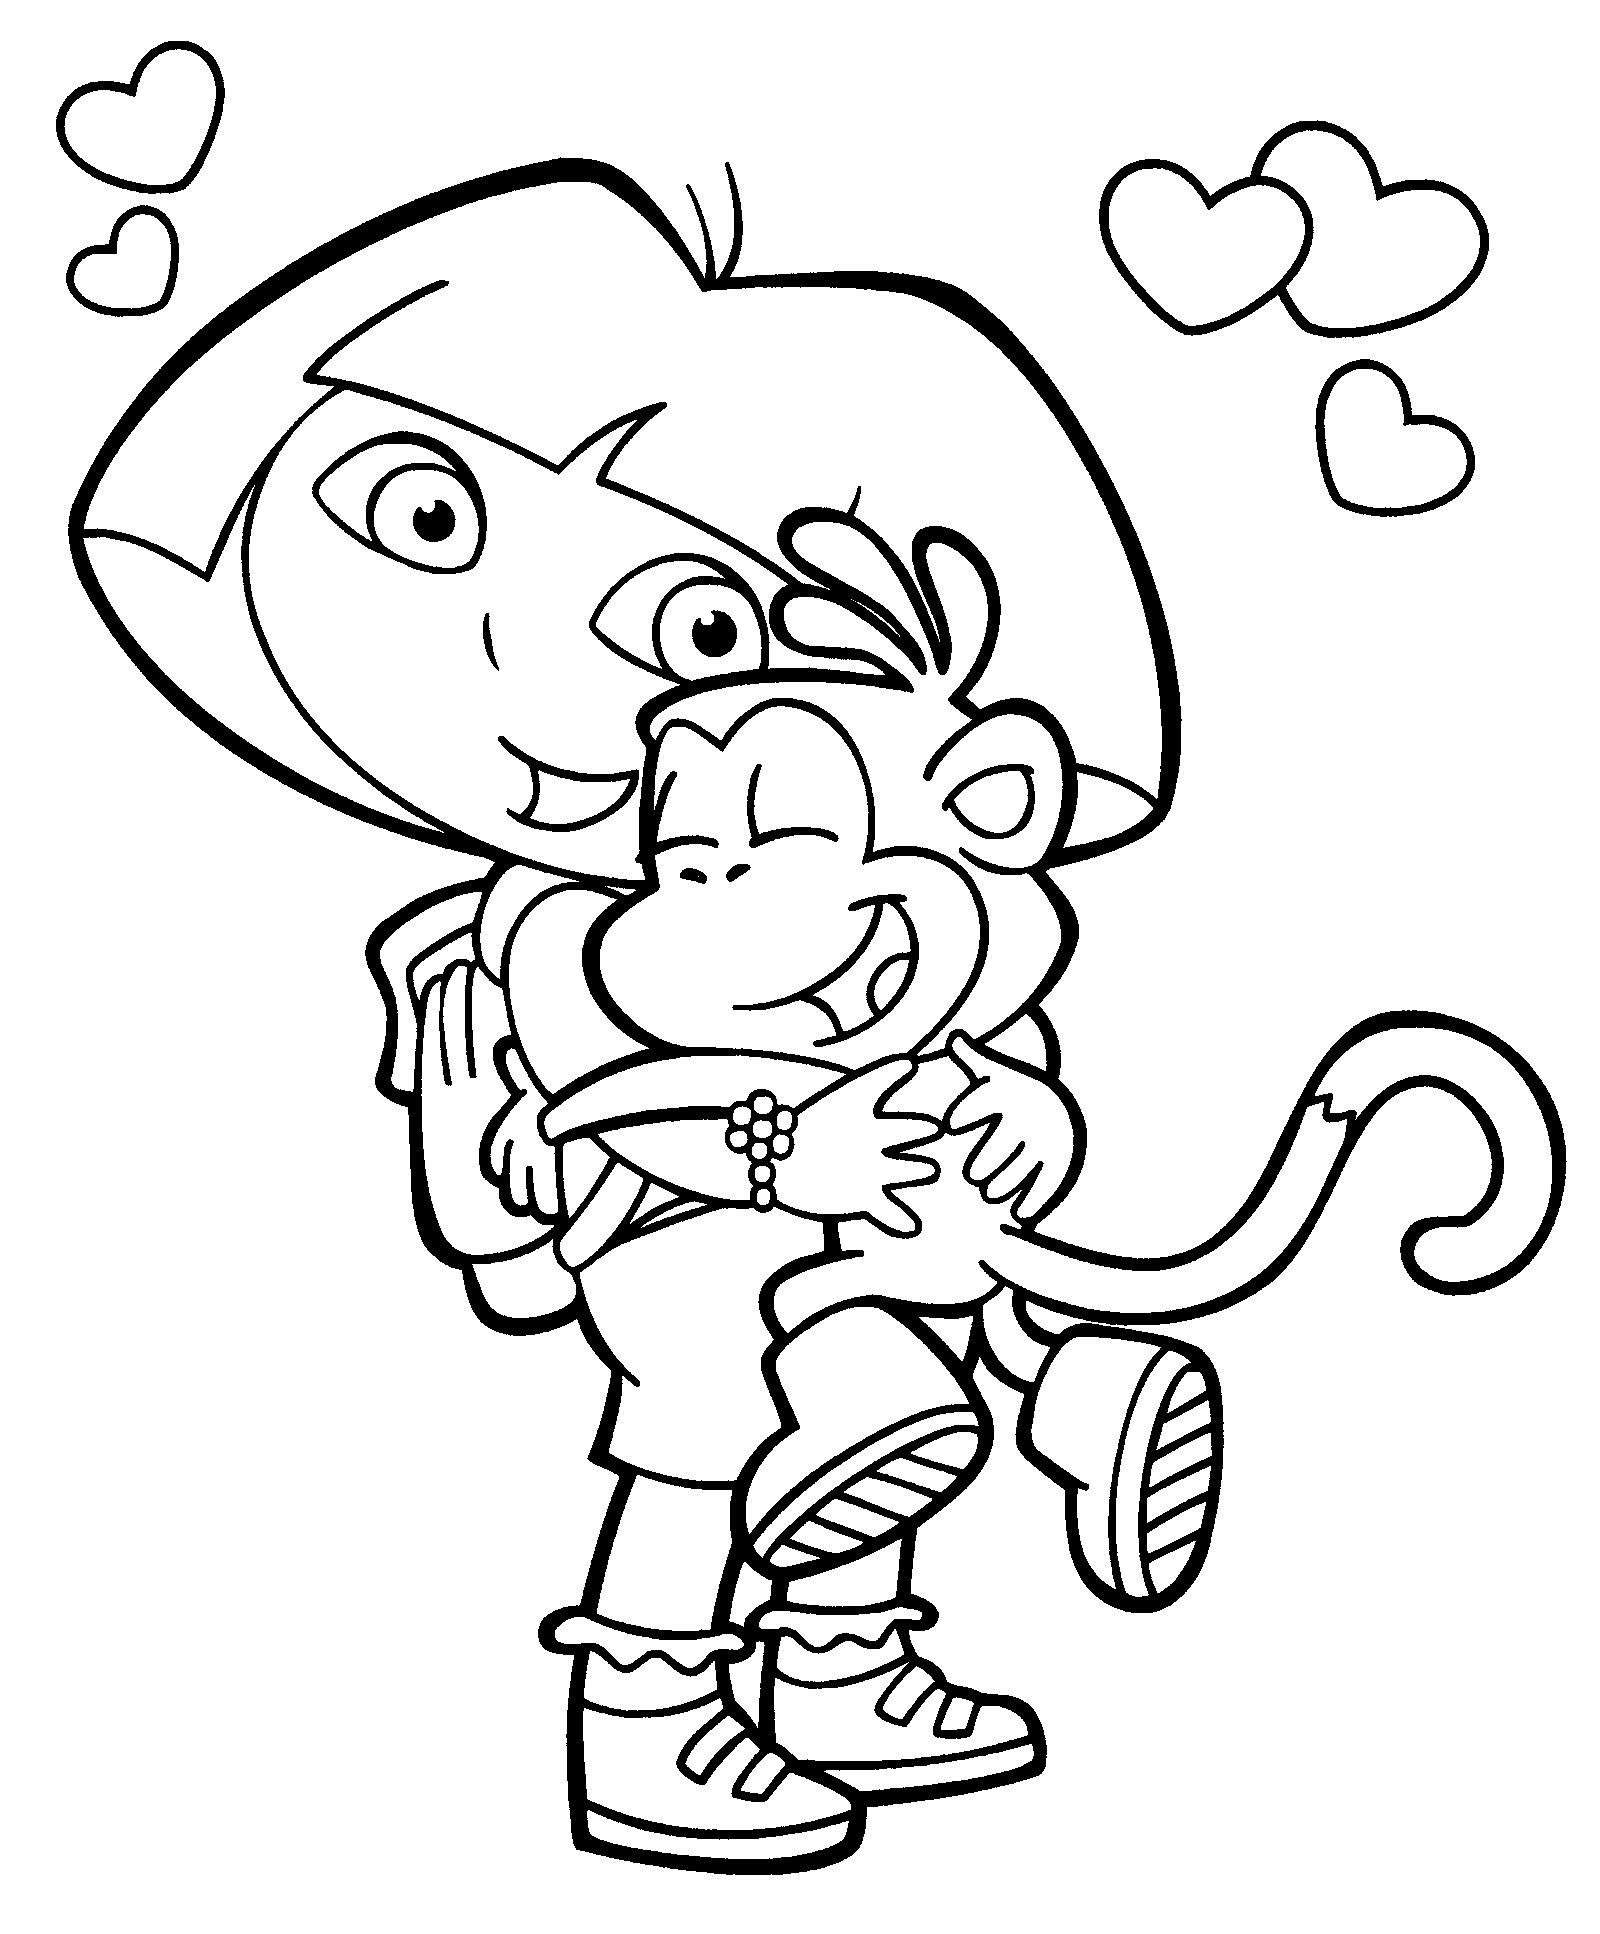 Dora The Explorer Coloring Pages 8 Coloring Kids The Explorer Coloring Pages To Print